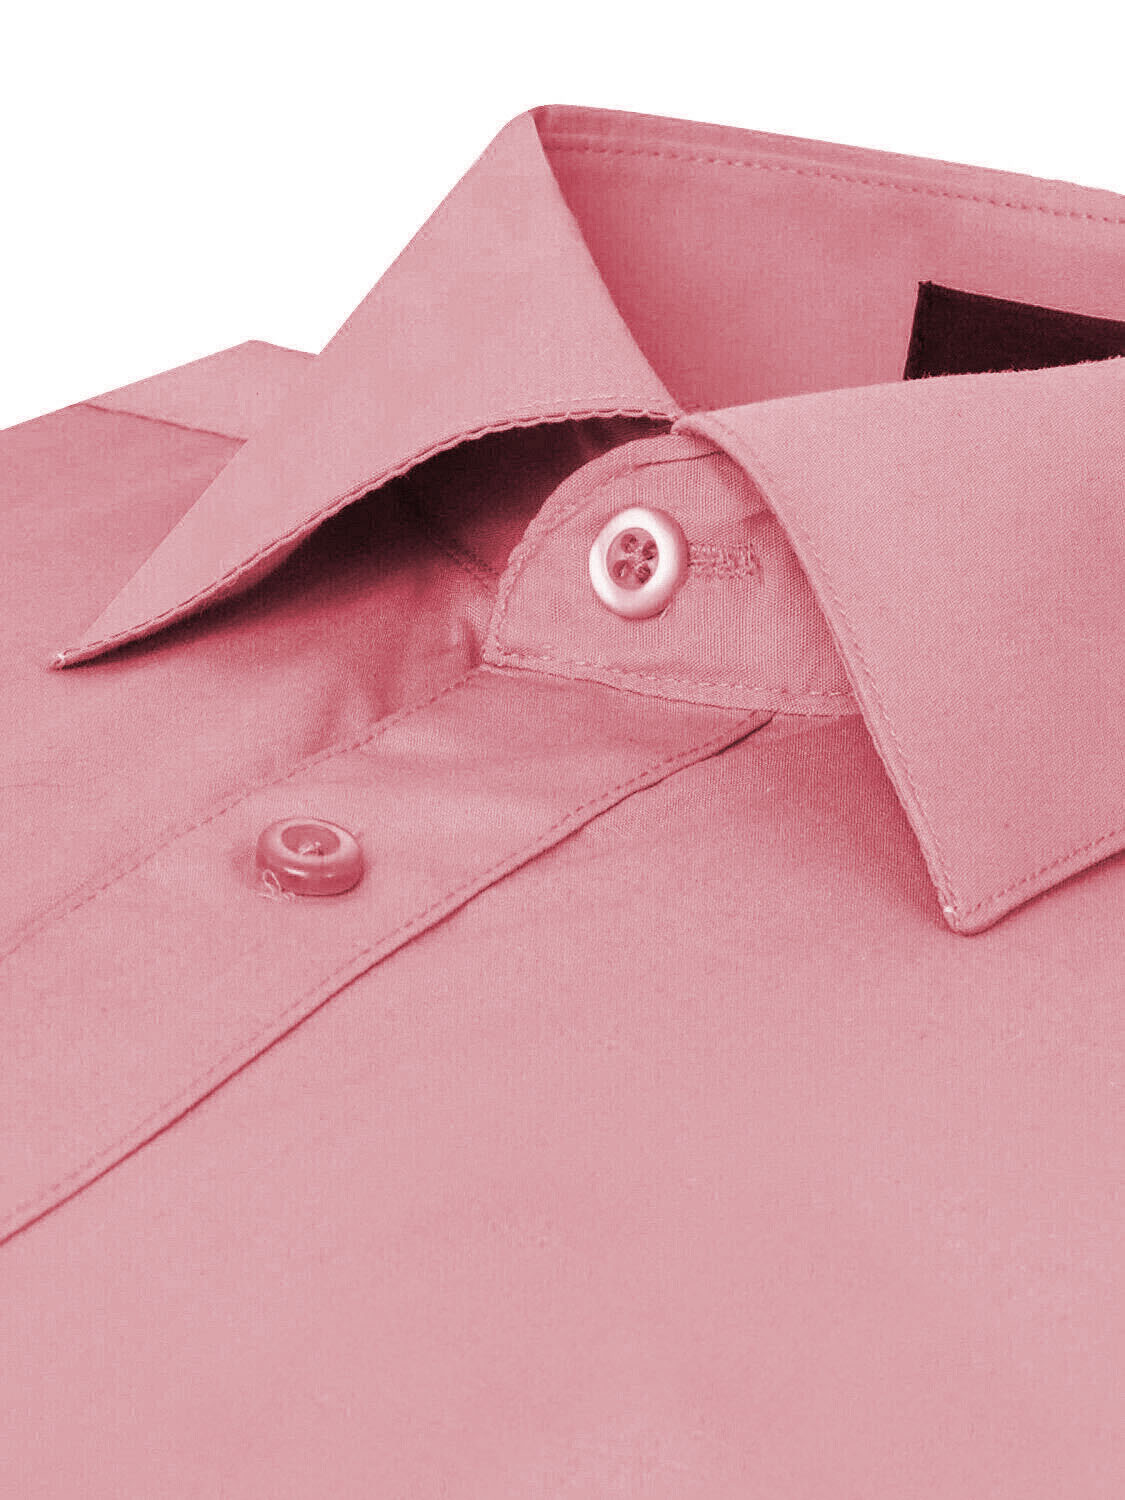 Omega-Italy-Men-039-s-Premium-Slim-Fit-Button-Up-Long-Sleeve-Solid-Color-Dress-Shirt thumbnail 100